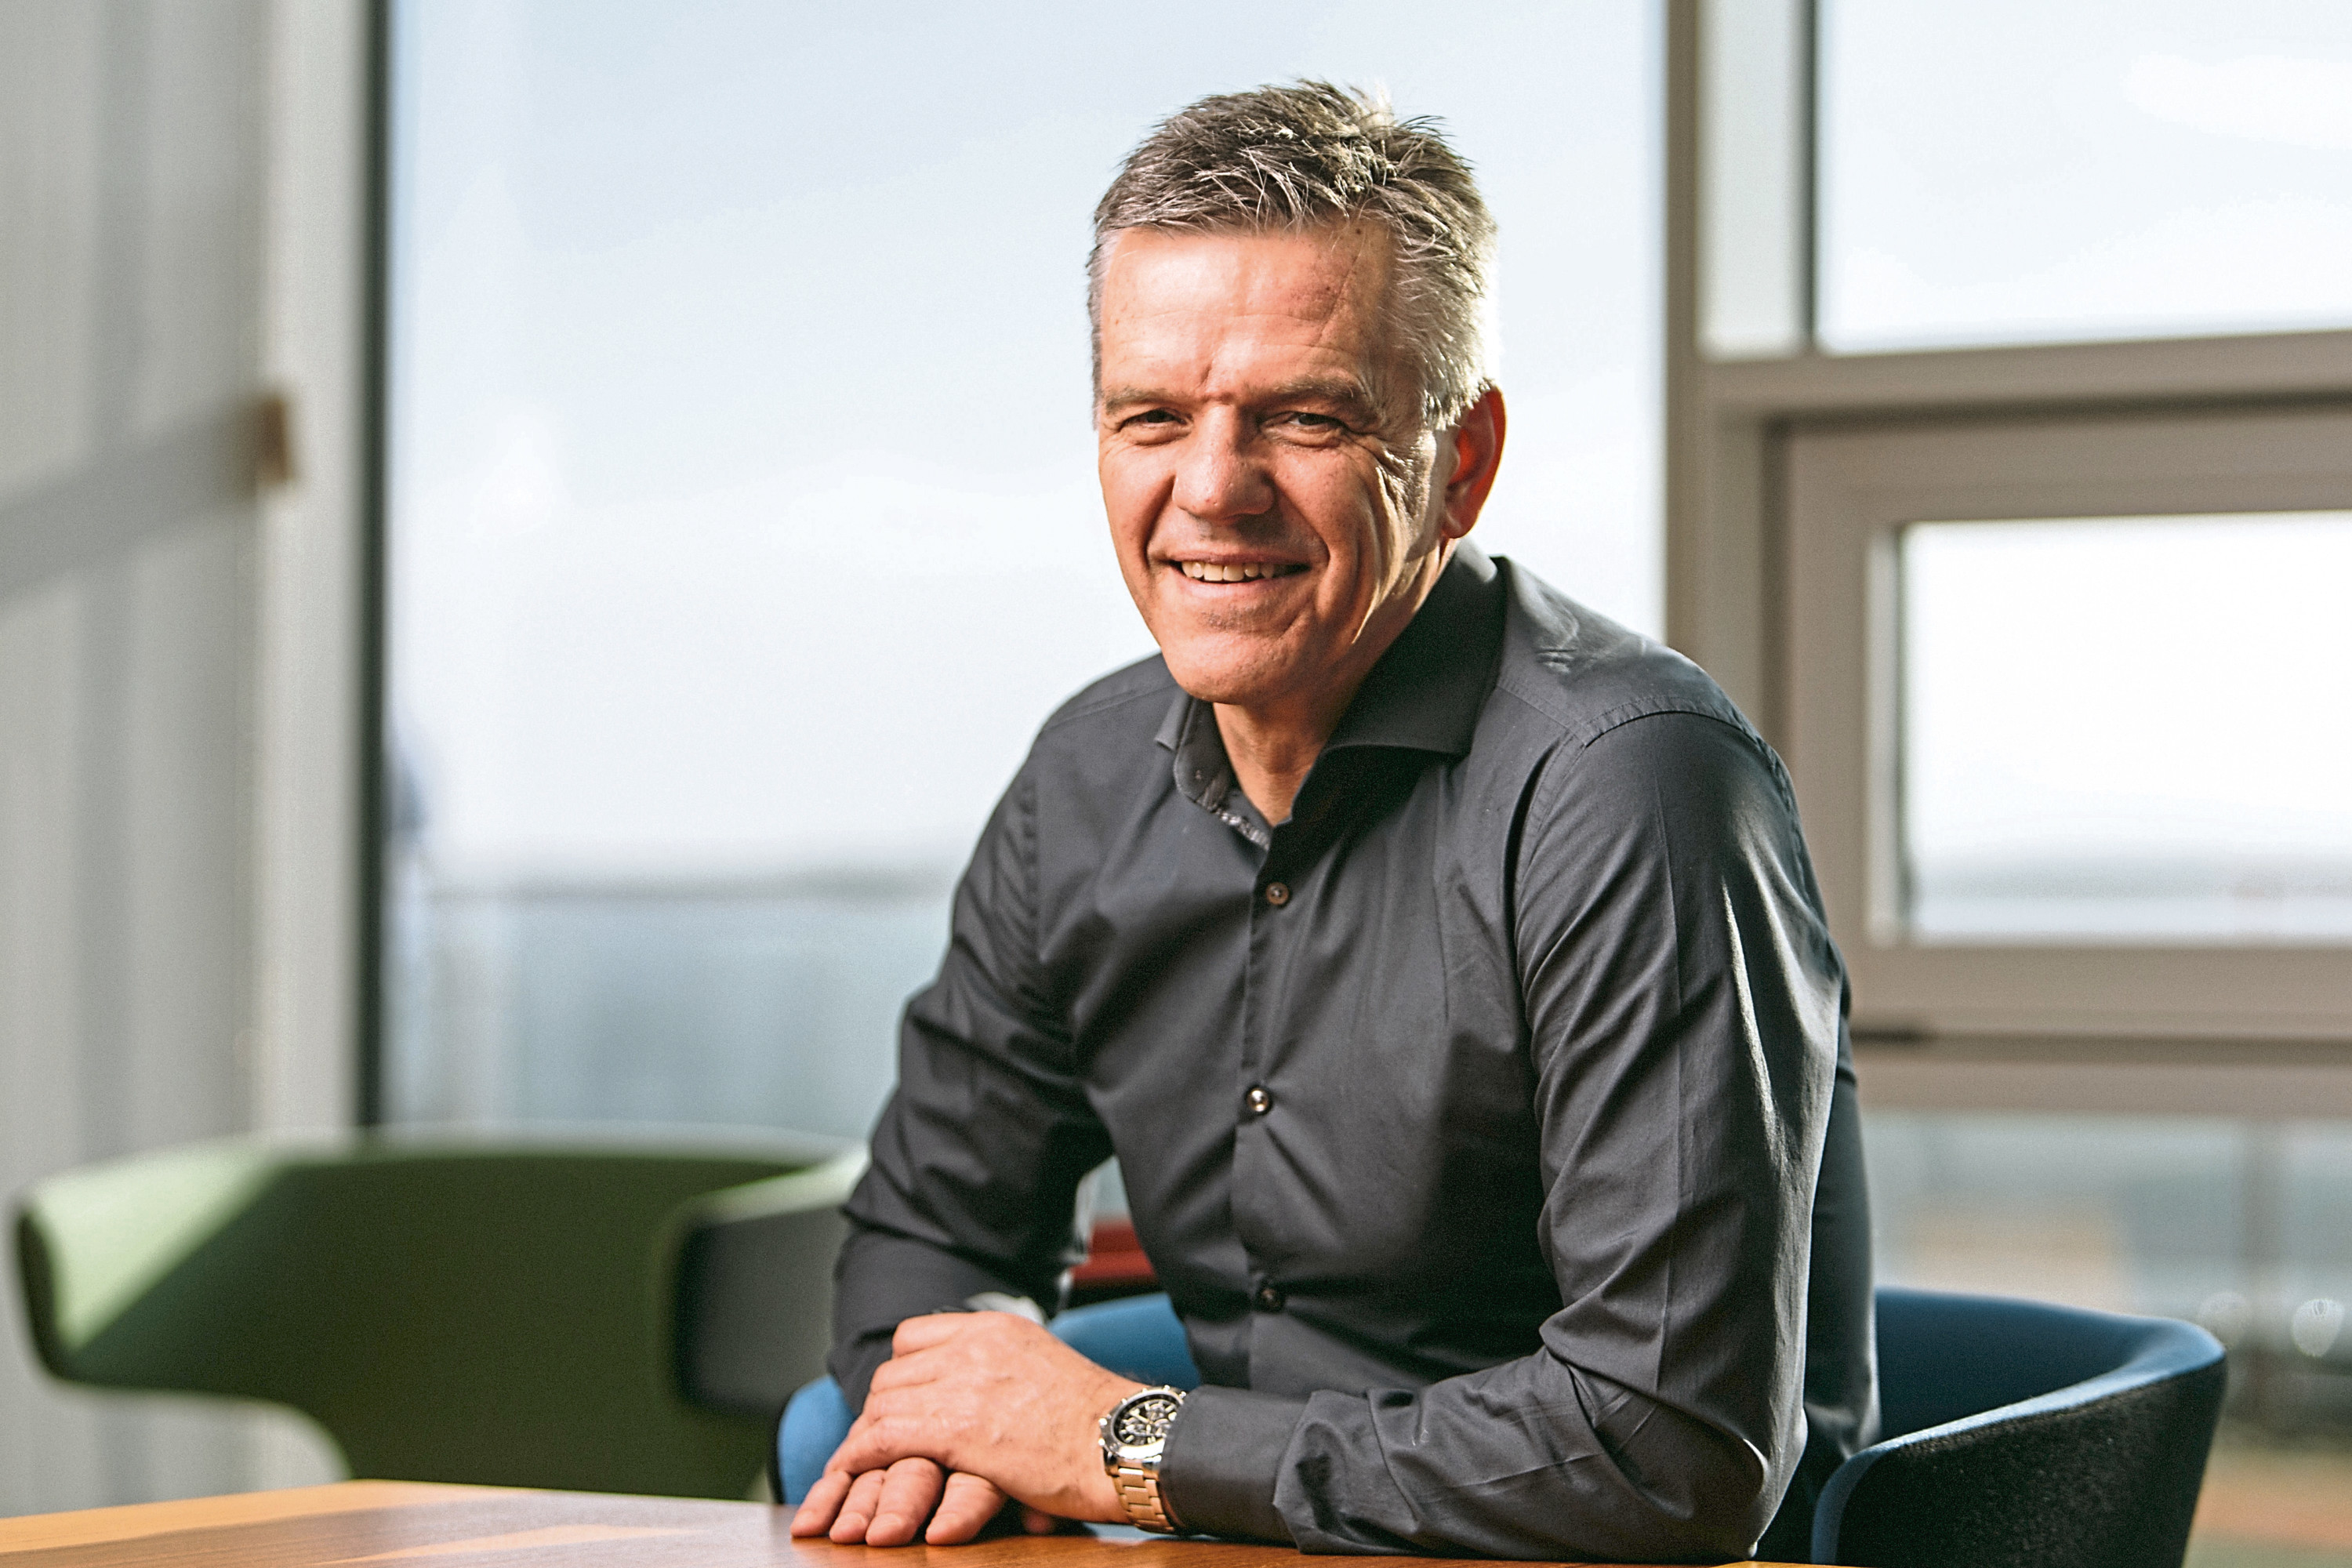 Wednesday 15th February 2017, Aberdeen, Scotland.  Chris Cox was appointed Managing Director, Exploration & Production on 1 February 2016.  Chris has over 30 years extensive experience in global oil and gas upstream activities with deep knowledge of a broad range of disciplines.  Since 2006 and prior to his appointment with Centrica, he held a number of senior roles at BG Group plc and was latterly the executive vice president, BG Advance and a member of the group executive team.  Before BG Group plc, Chris was with both Amerada Hess and Chevron Corporation in a variety of technical, commercial and management roles in a number of international settings.  Pictured: Chris Cox, Managing Director, Exploration & Production Centrica  (Photo: Ross Johnston/Newsline Media)